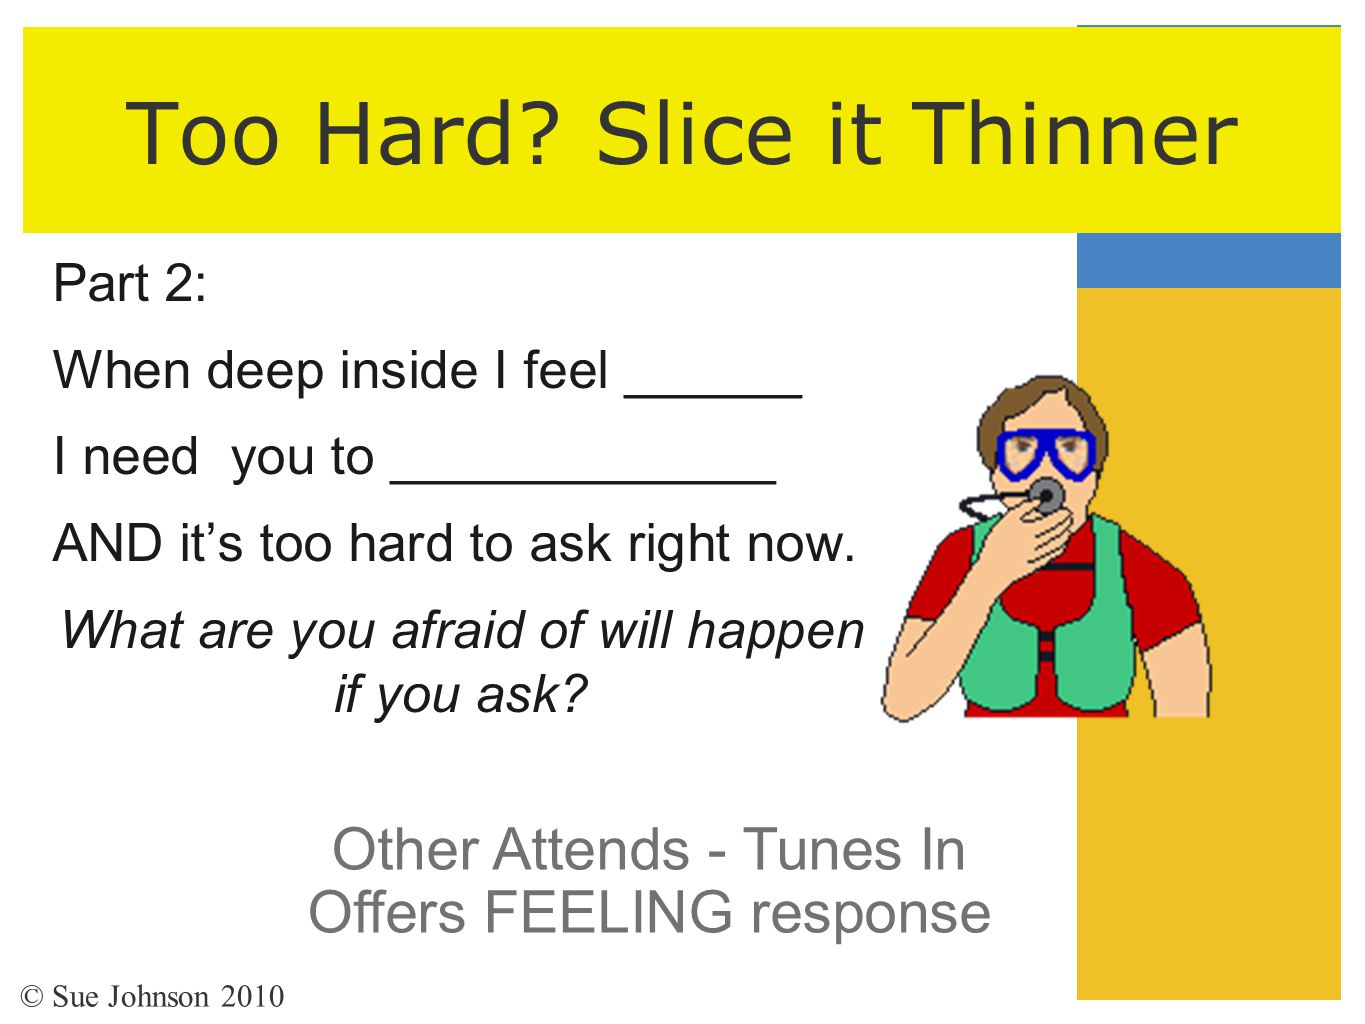 Too Hard? Slice it Thinner Part 2: When deep inside I feel ______ I need you to _____________ AND it's too hard to ask right now. What are you afraid